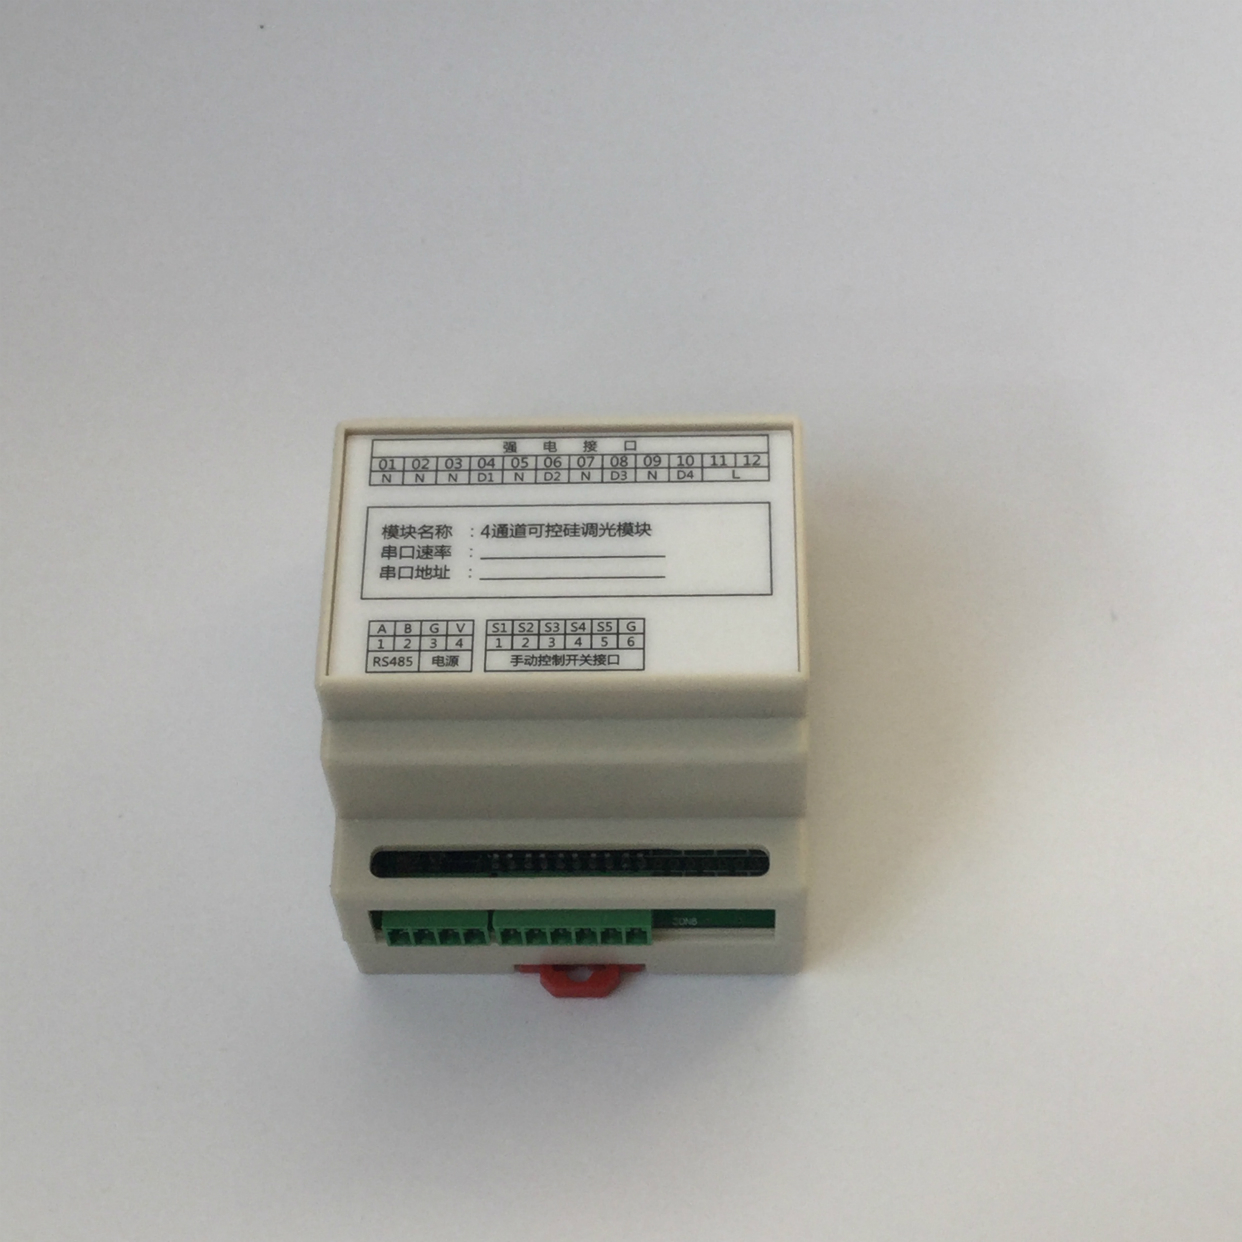 4 way thyristor dimming module RS485 Modbus 4 way thyristor dimming module rs485 modbus